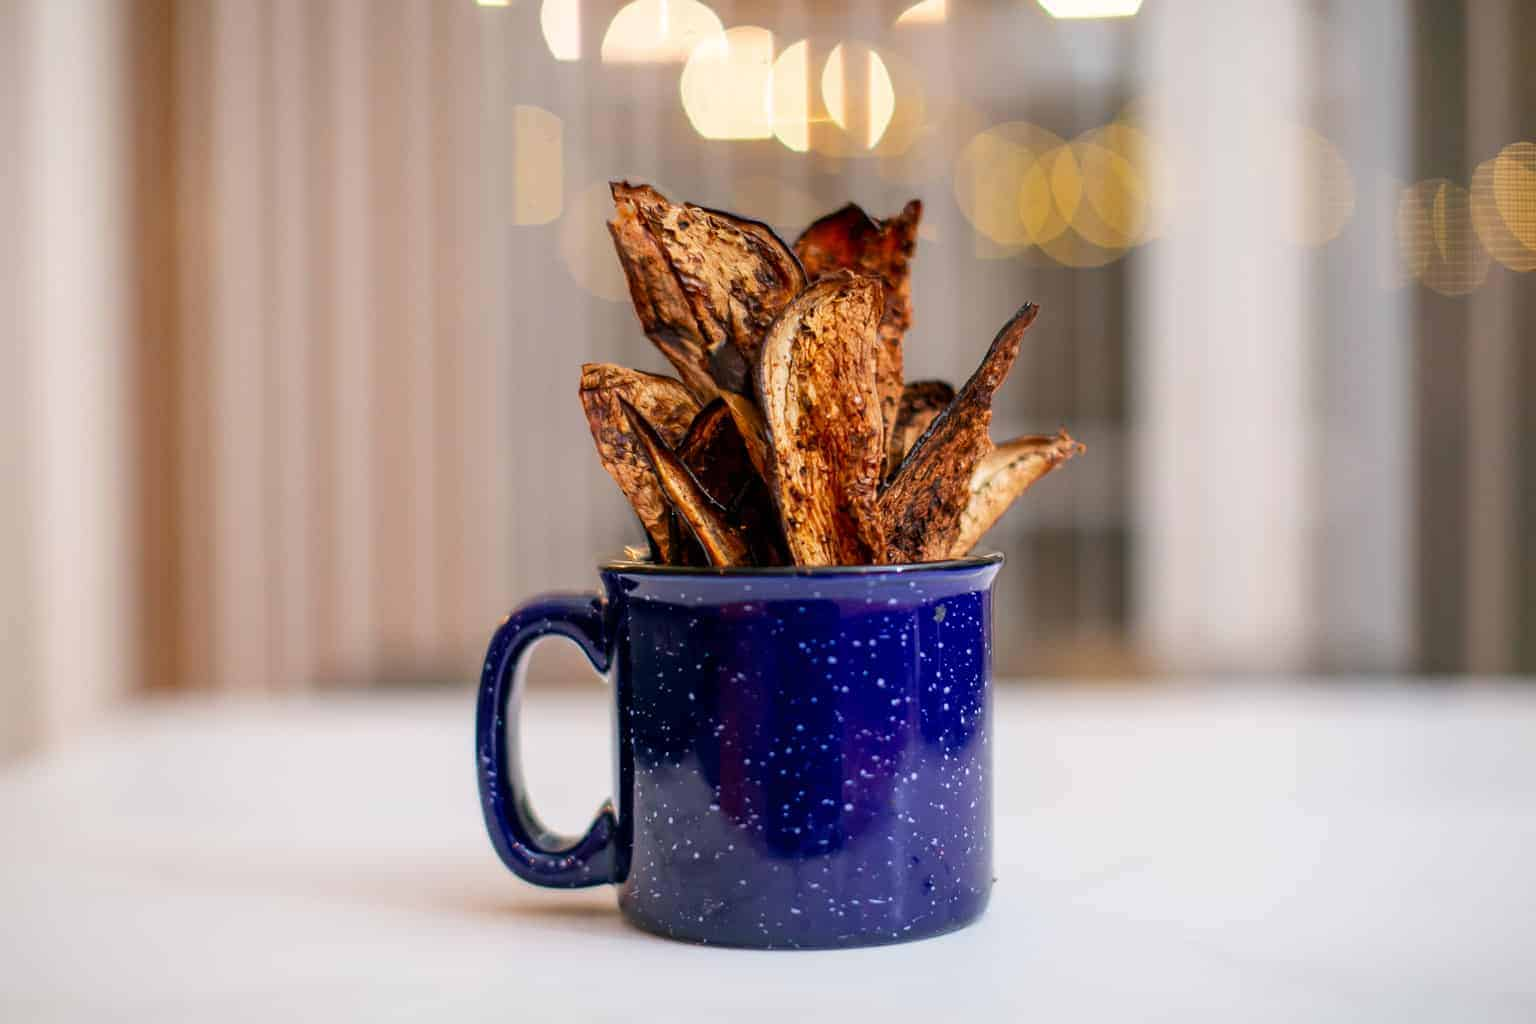 Crispy eggplant chips served in a mug